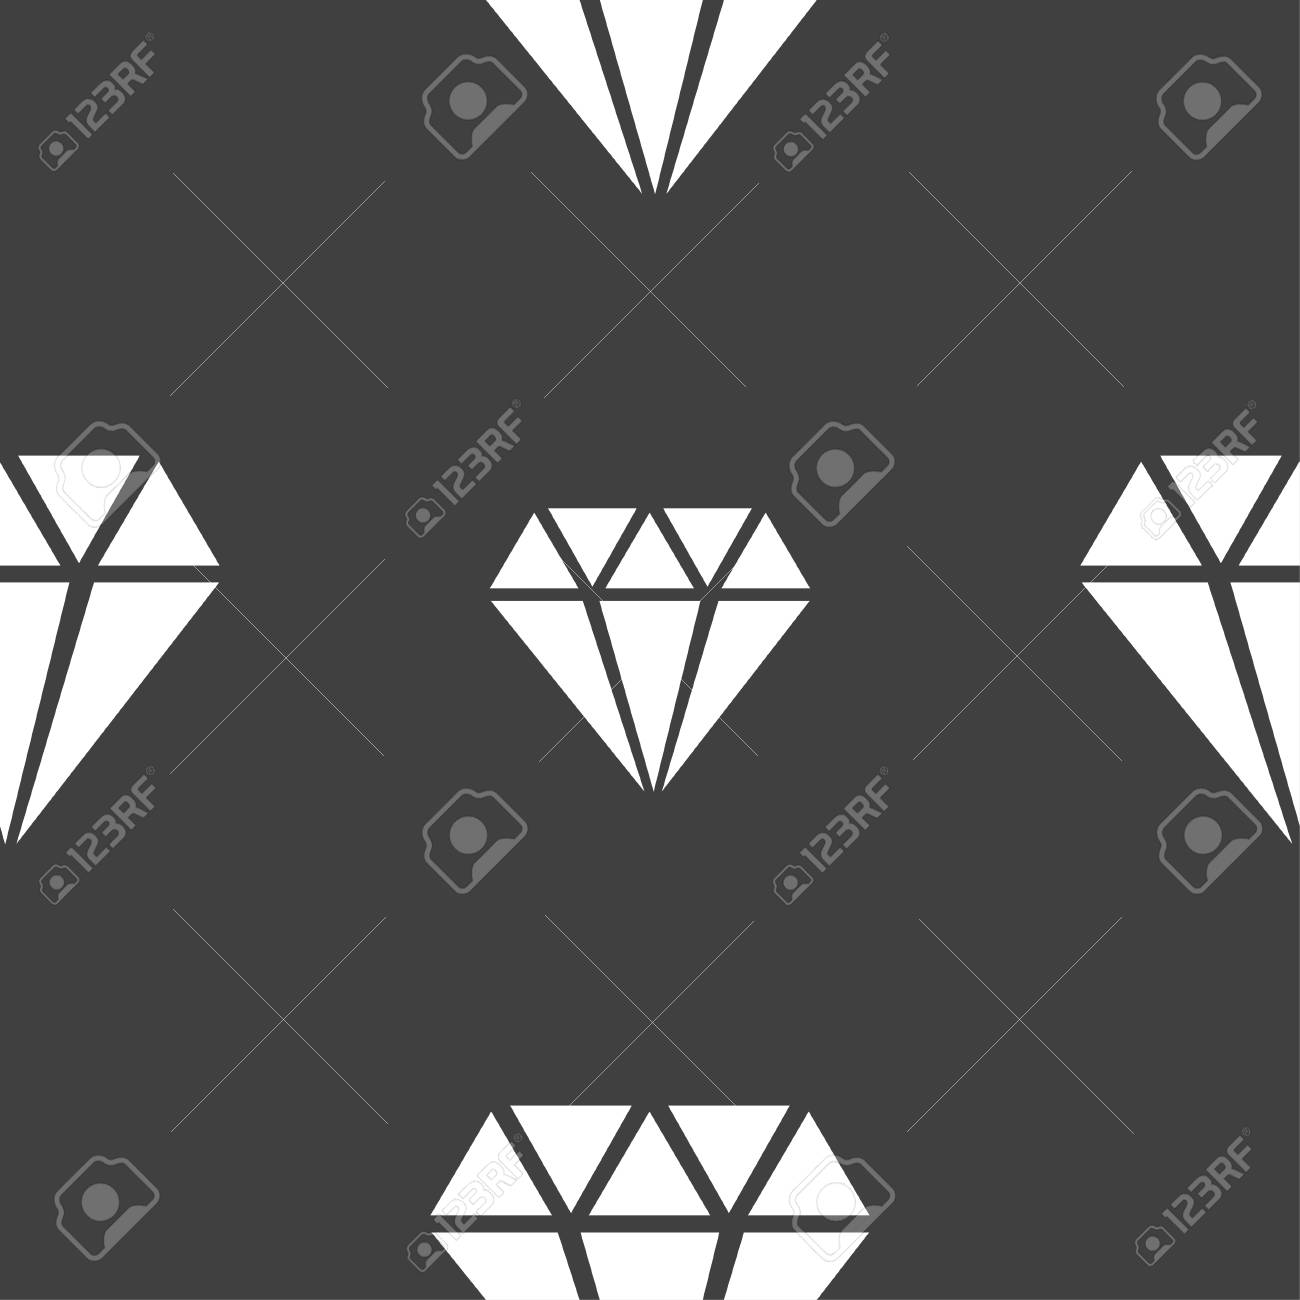 diamond icon sign. Seamless pattern on a gray background. Vector illustration - 52082405